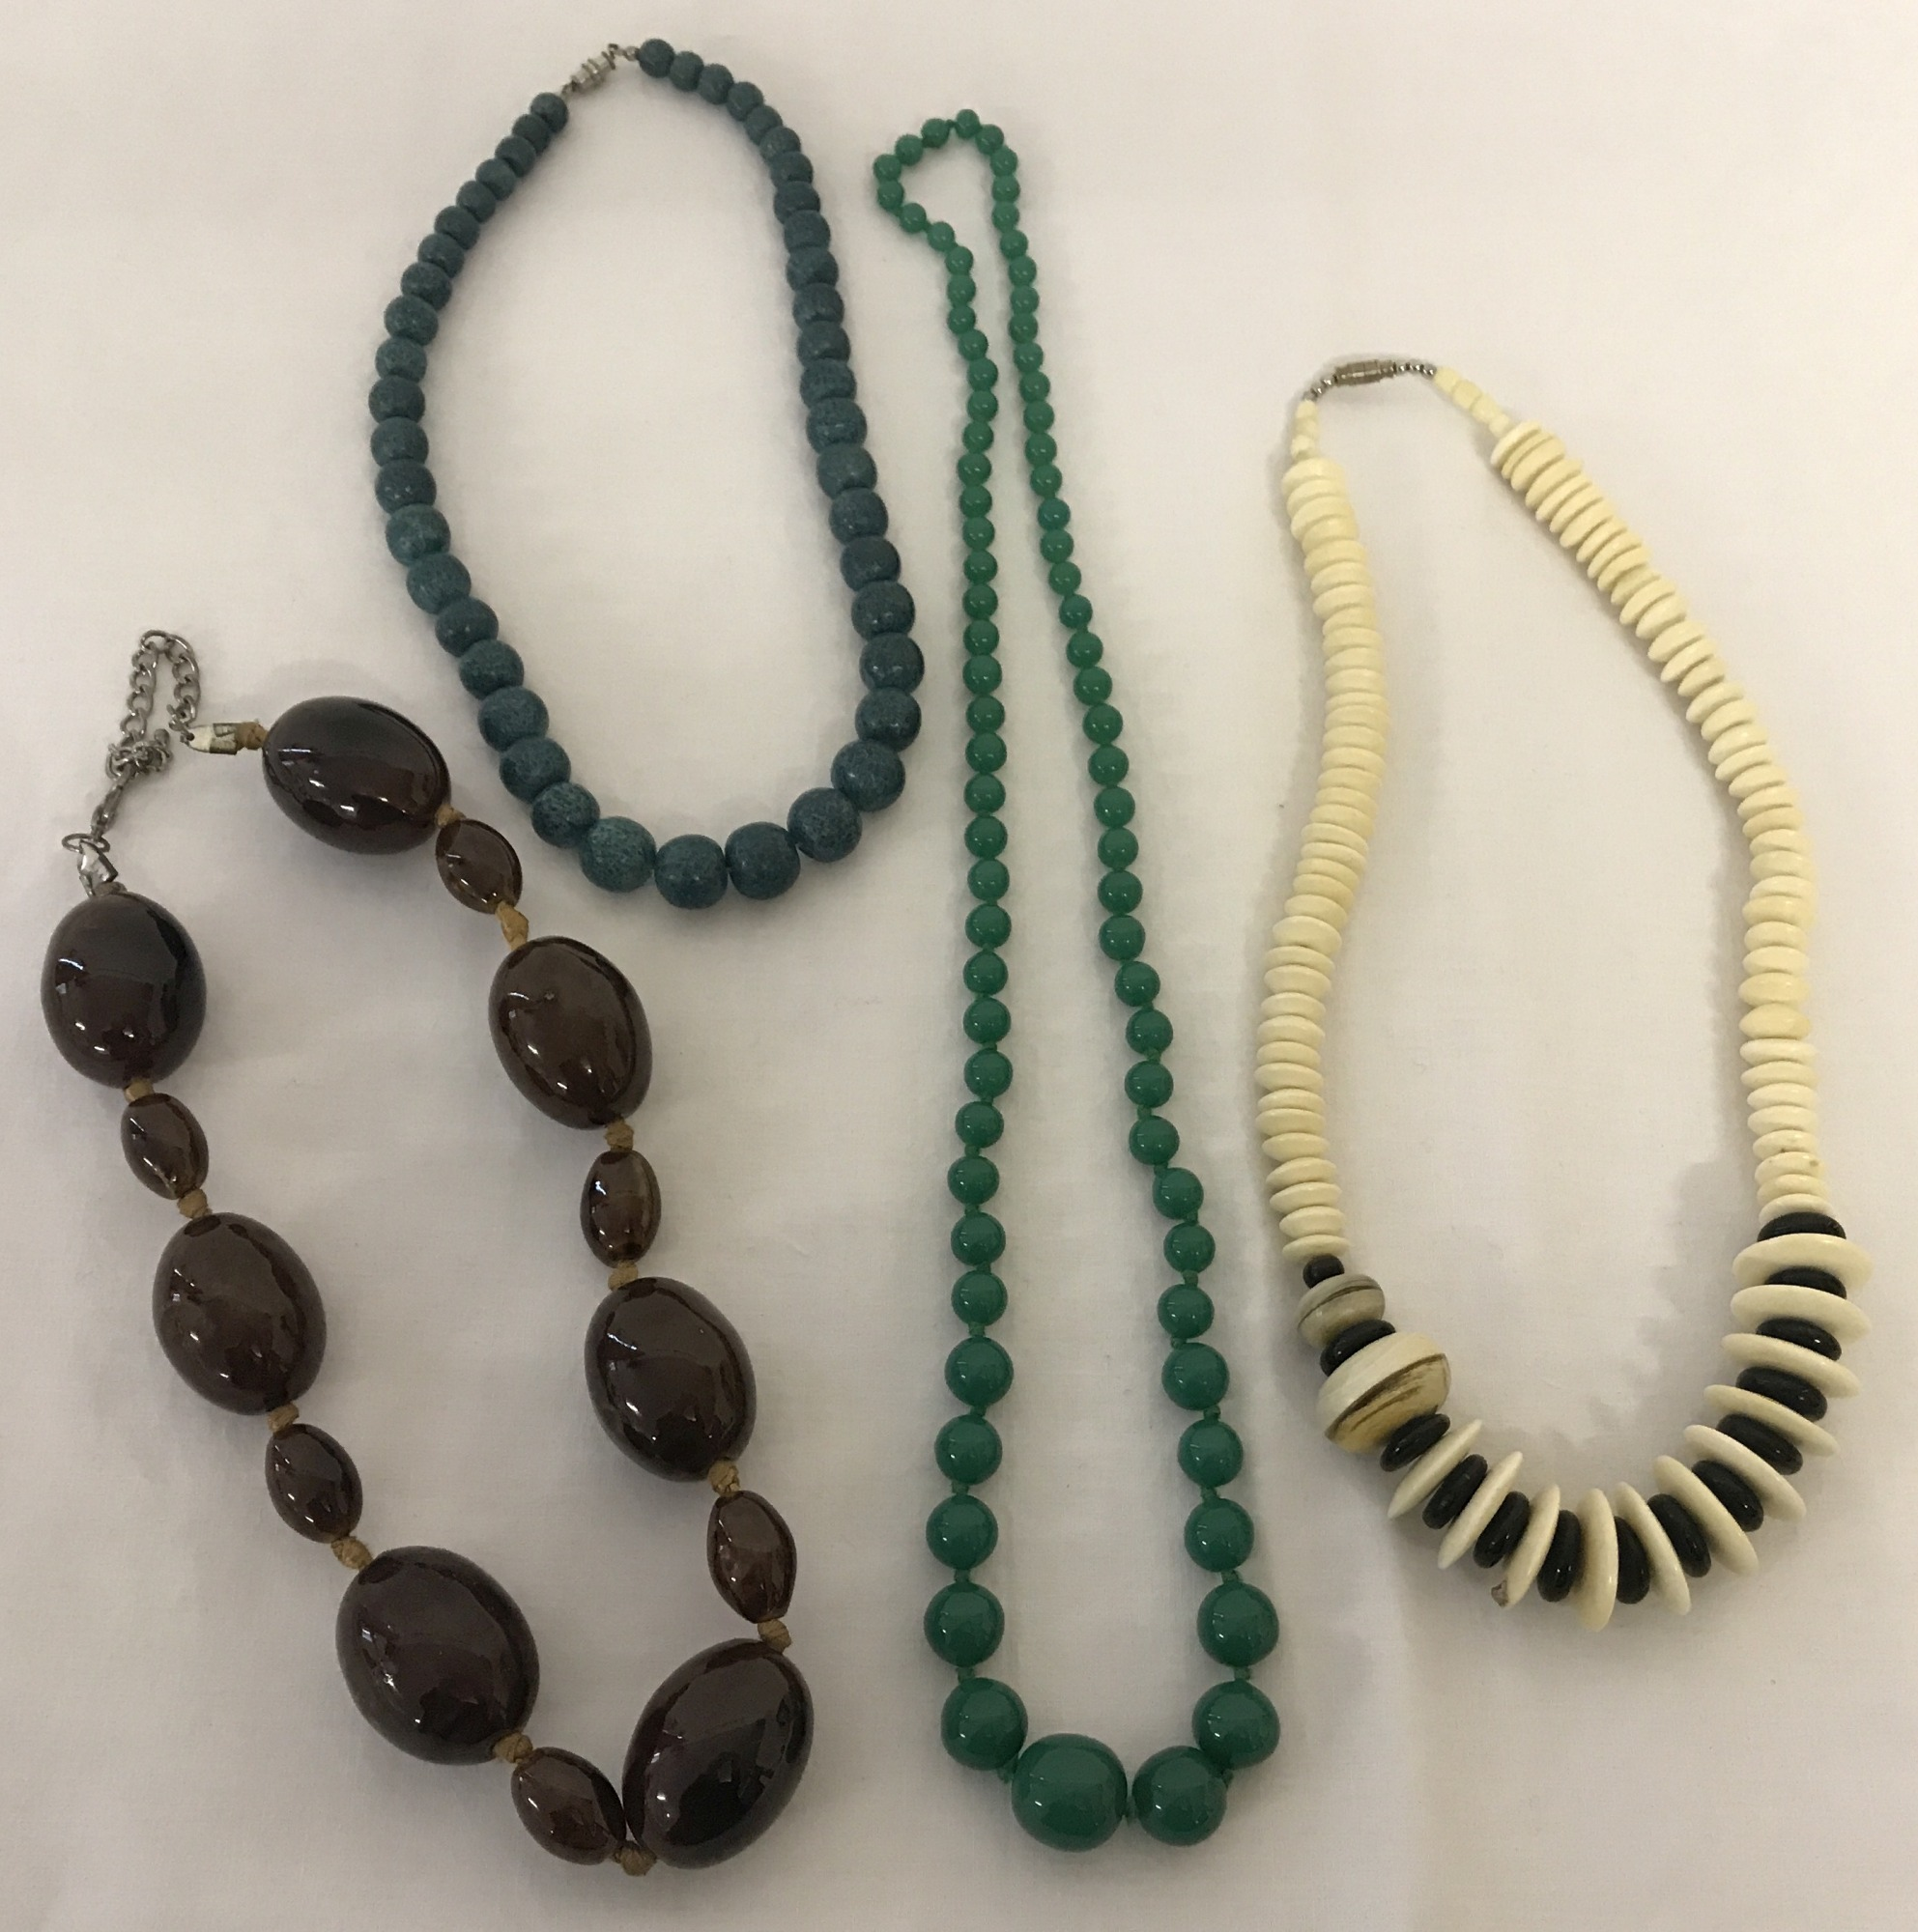 Lot 55 - A collection of 4 natural stone and glass bead dress necklaces.